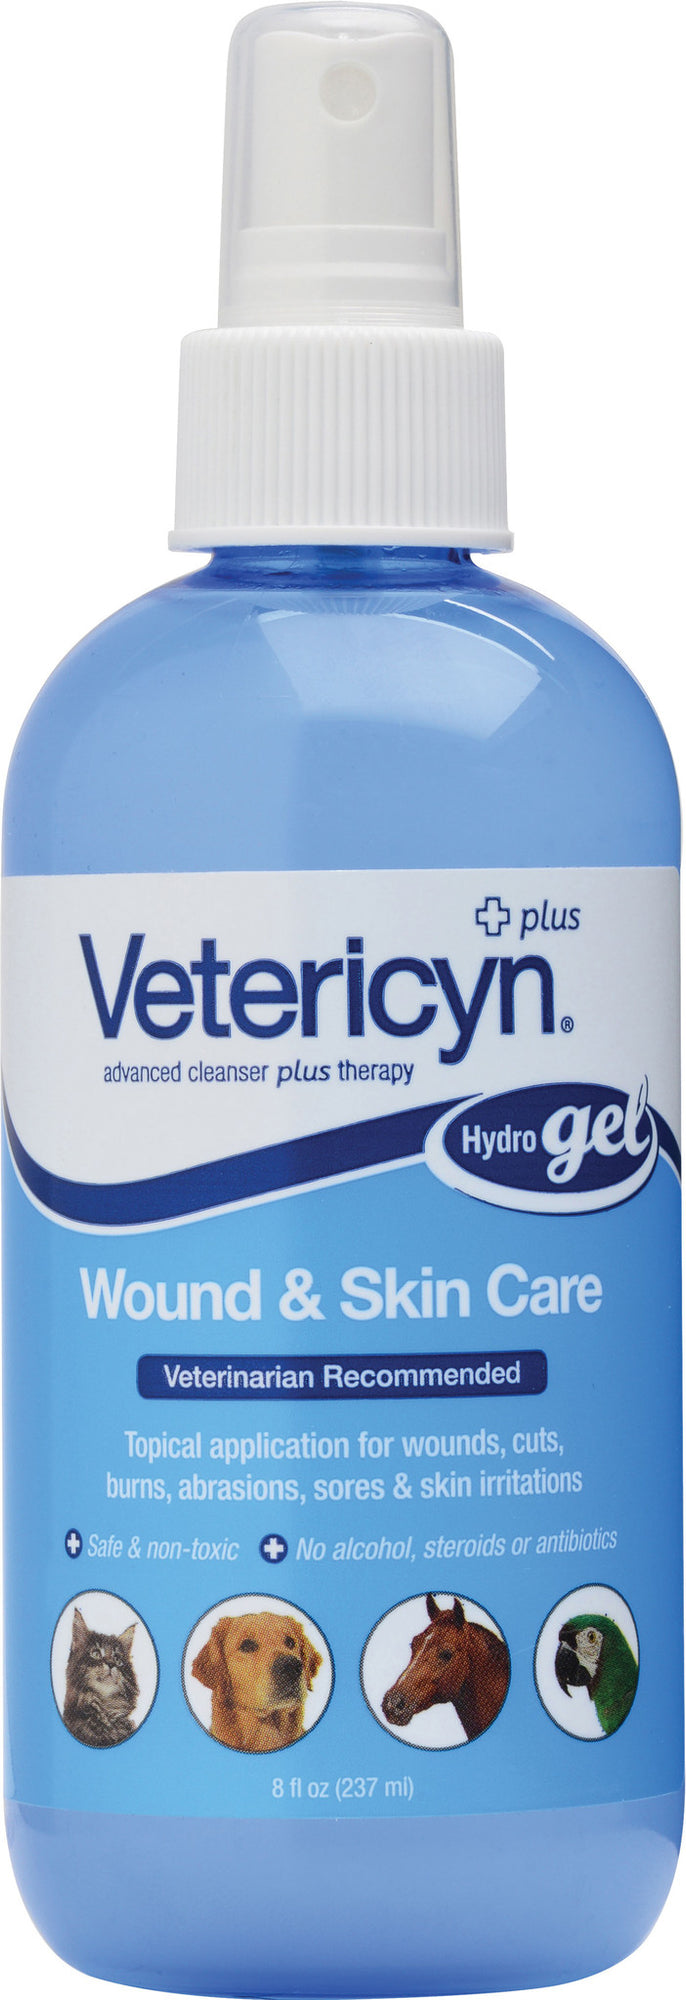 Vetericyn +Plus All Animal Wound & Skin Care Hydrogel